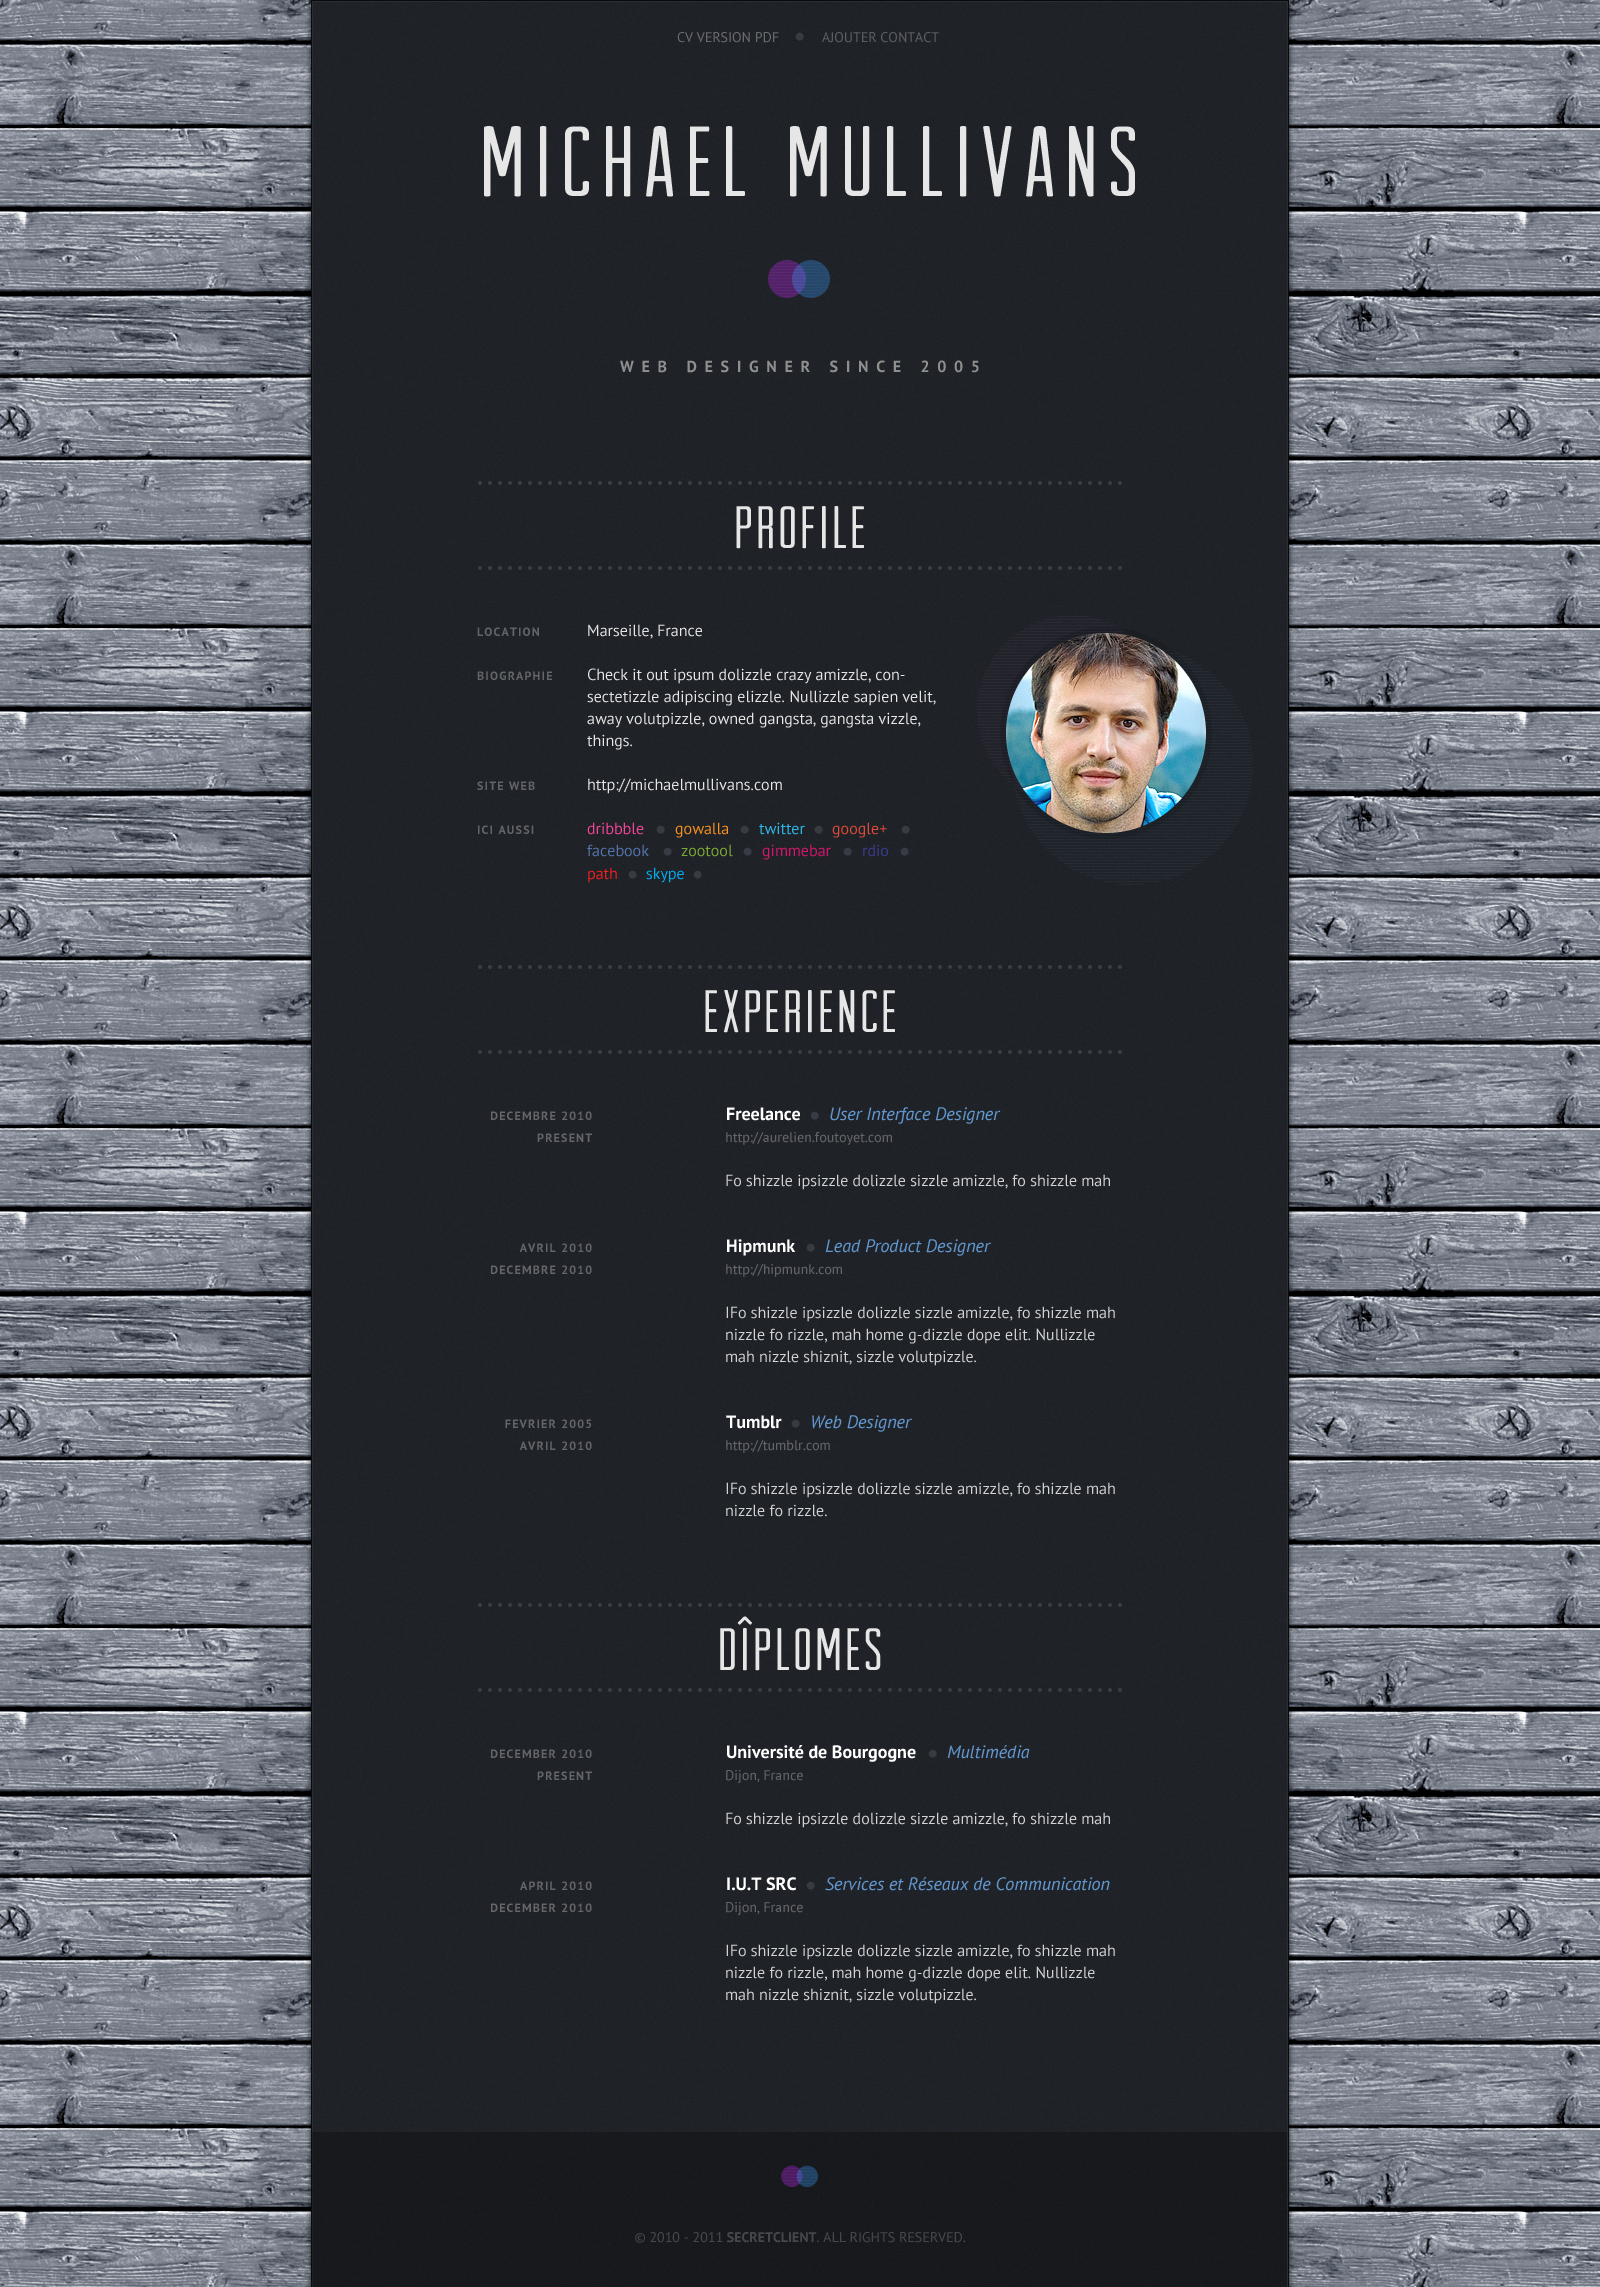 great cv layout  simple clean design   web designer  notyouraveragecv